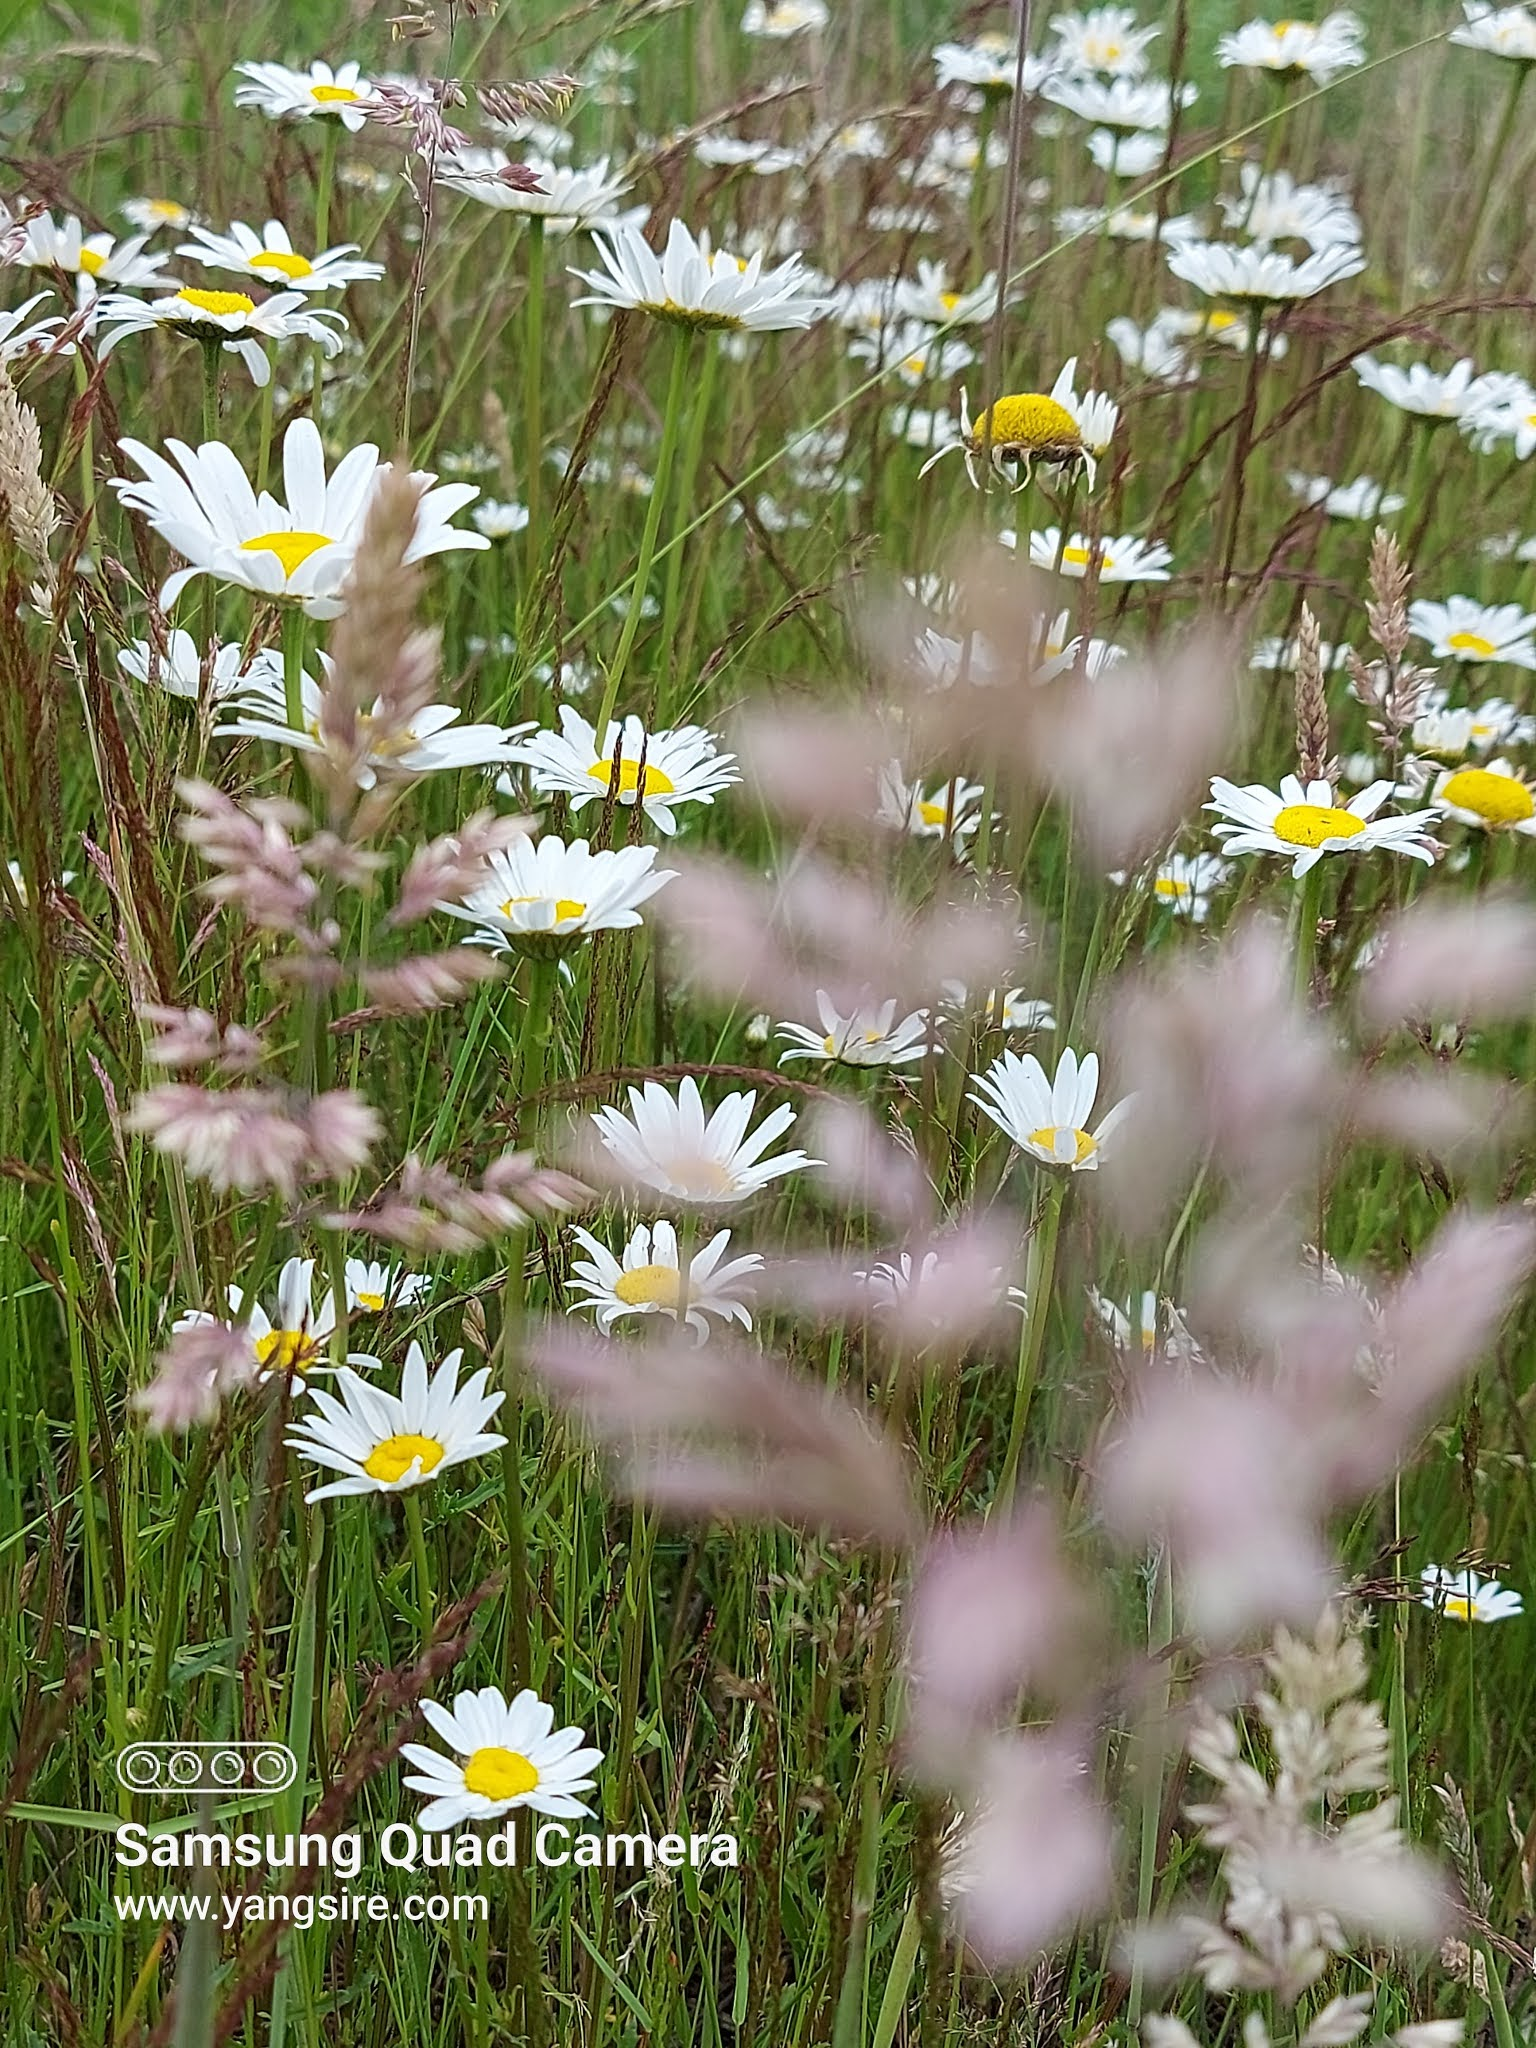 Beautiful photos of the fields of daisy